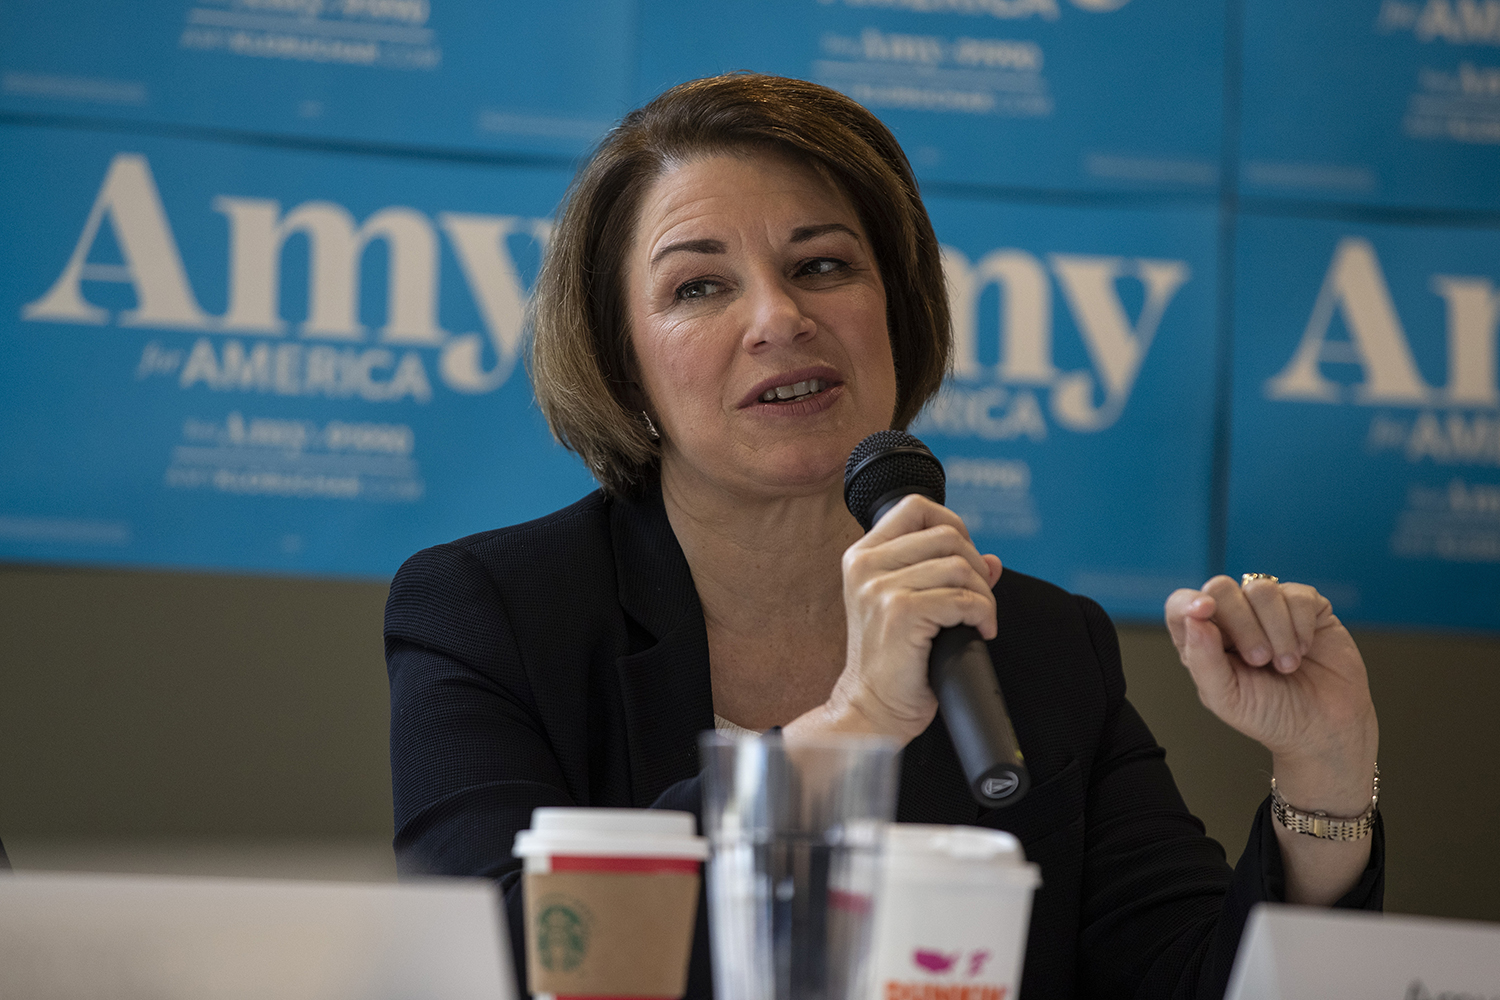 Sen. Amy Klobuchar, D-MN, addresses supporters at her affordable housing roundtable at Cross Park Place in Iowa City on July 26, 2019. (Katie Goodale/The Daily Iowan)